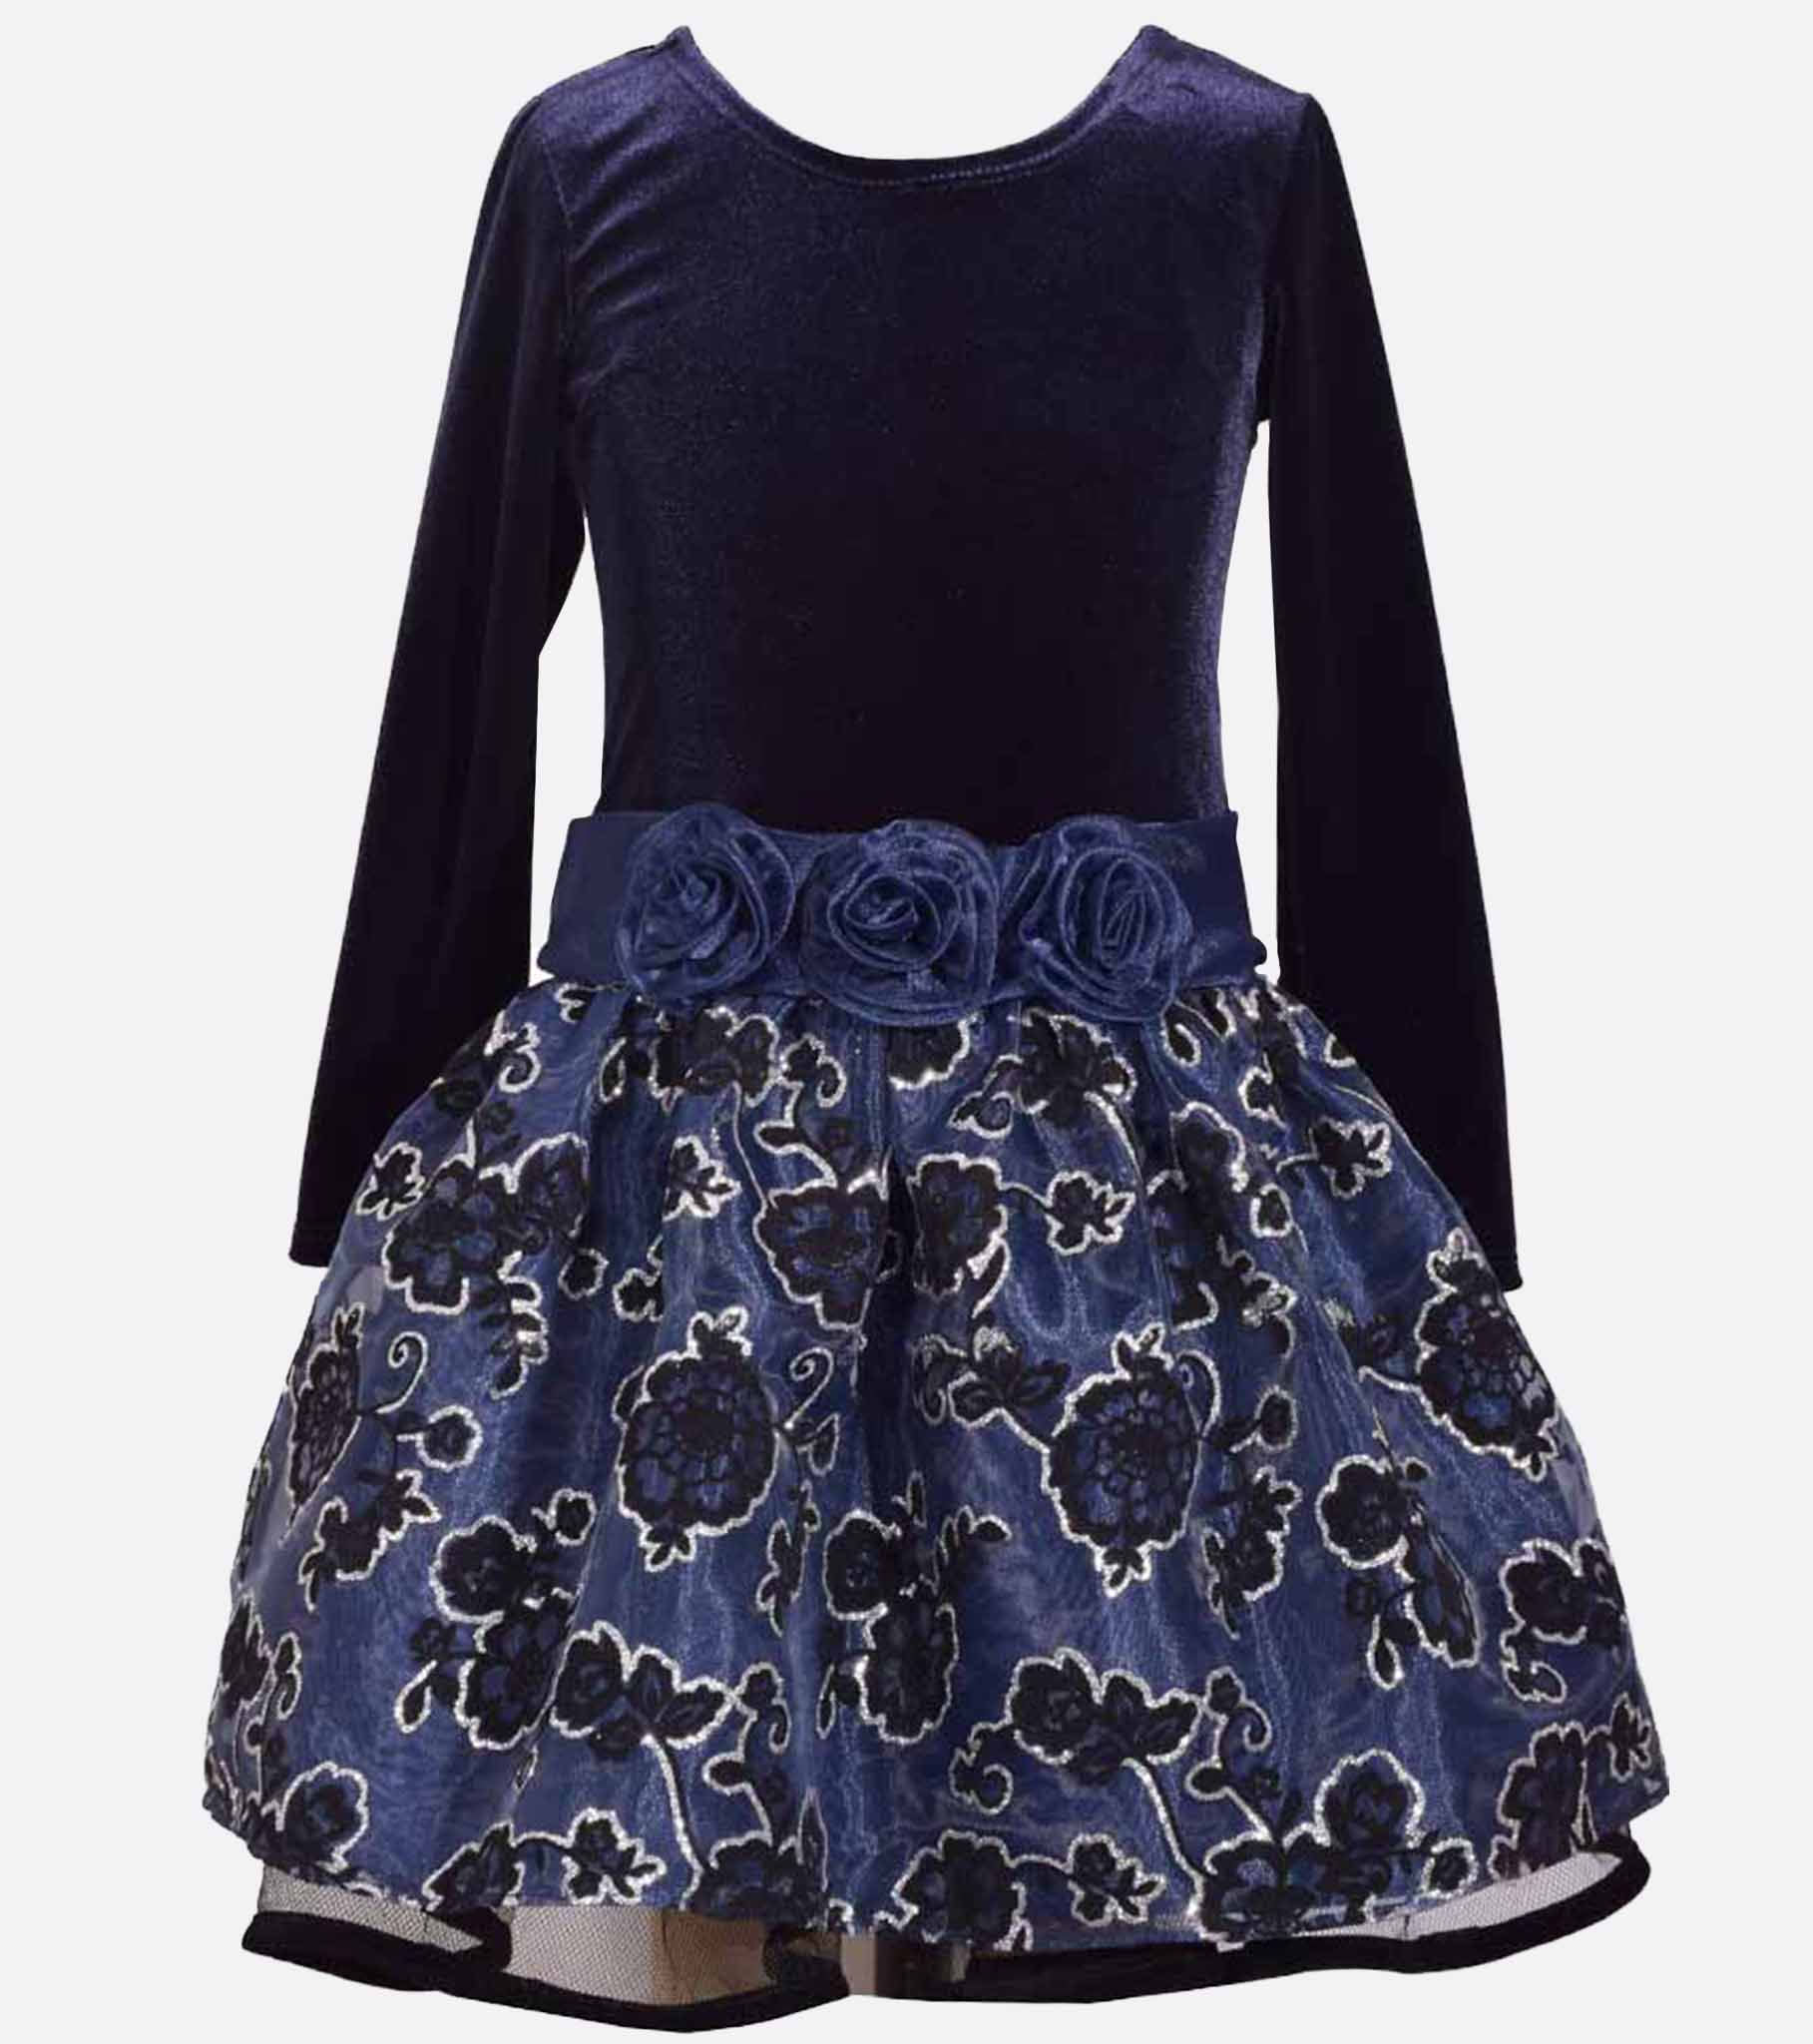 Plus Size Dresses for Teens